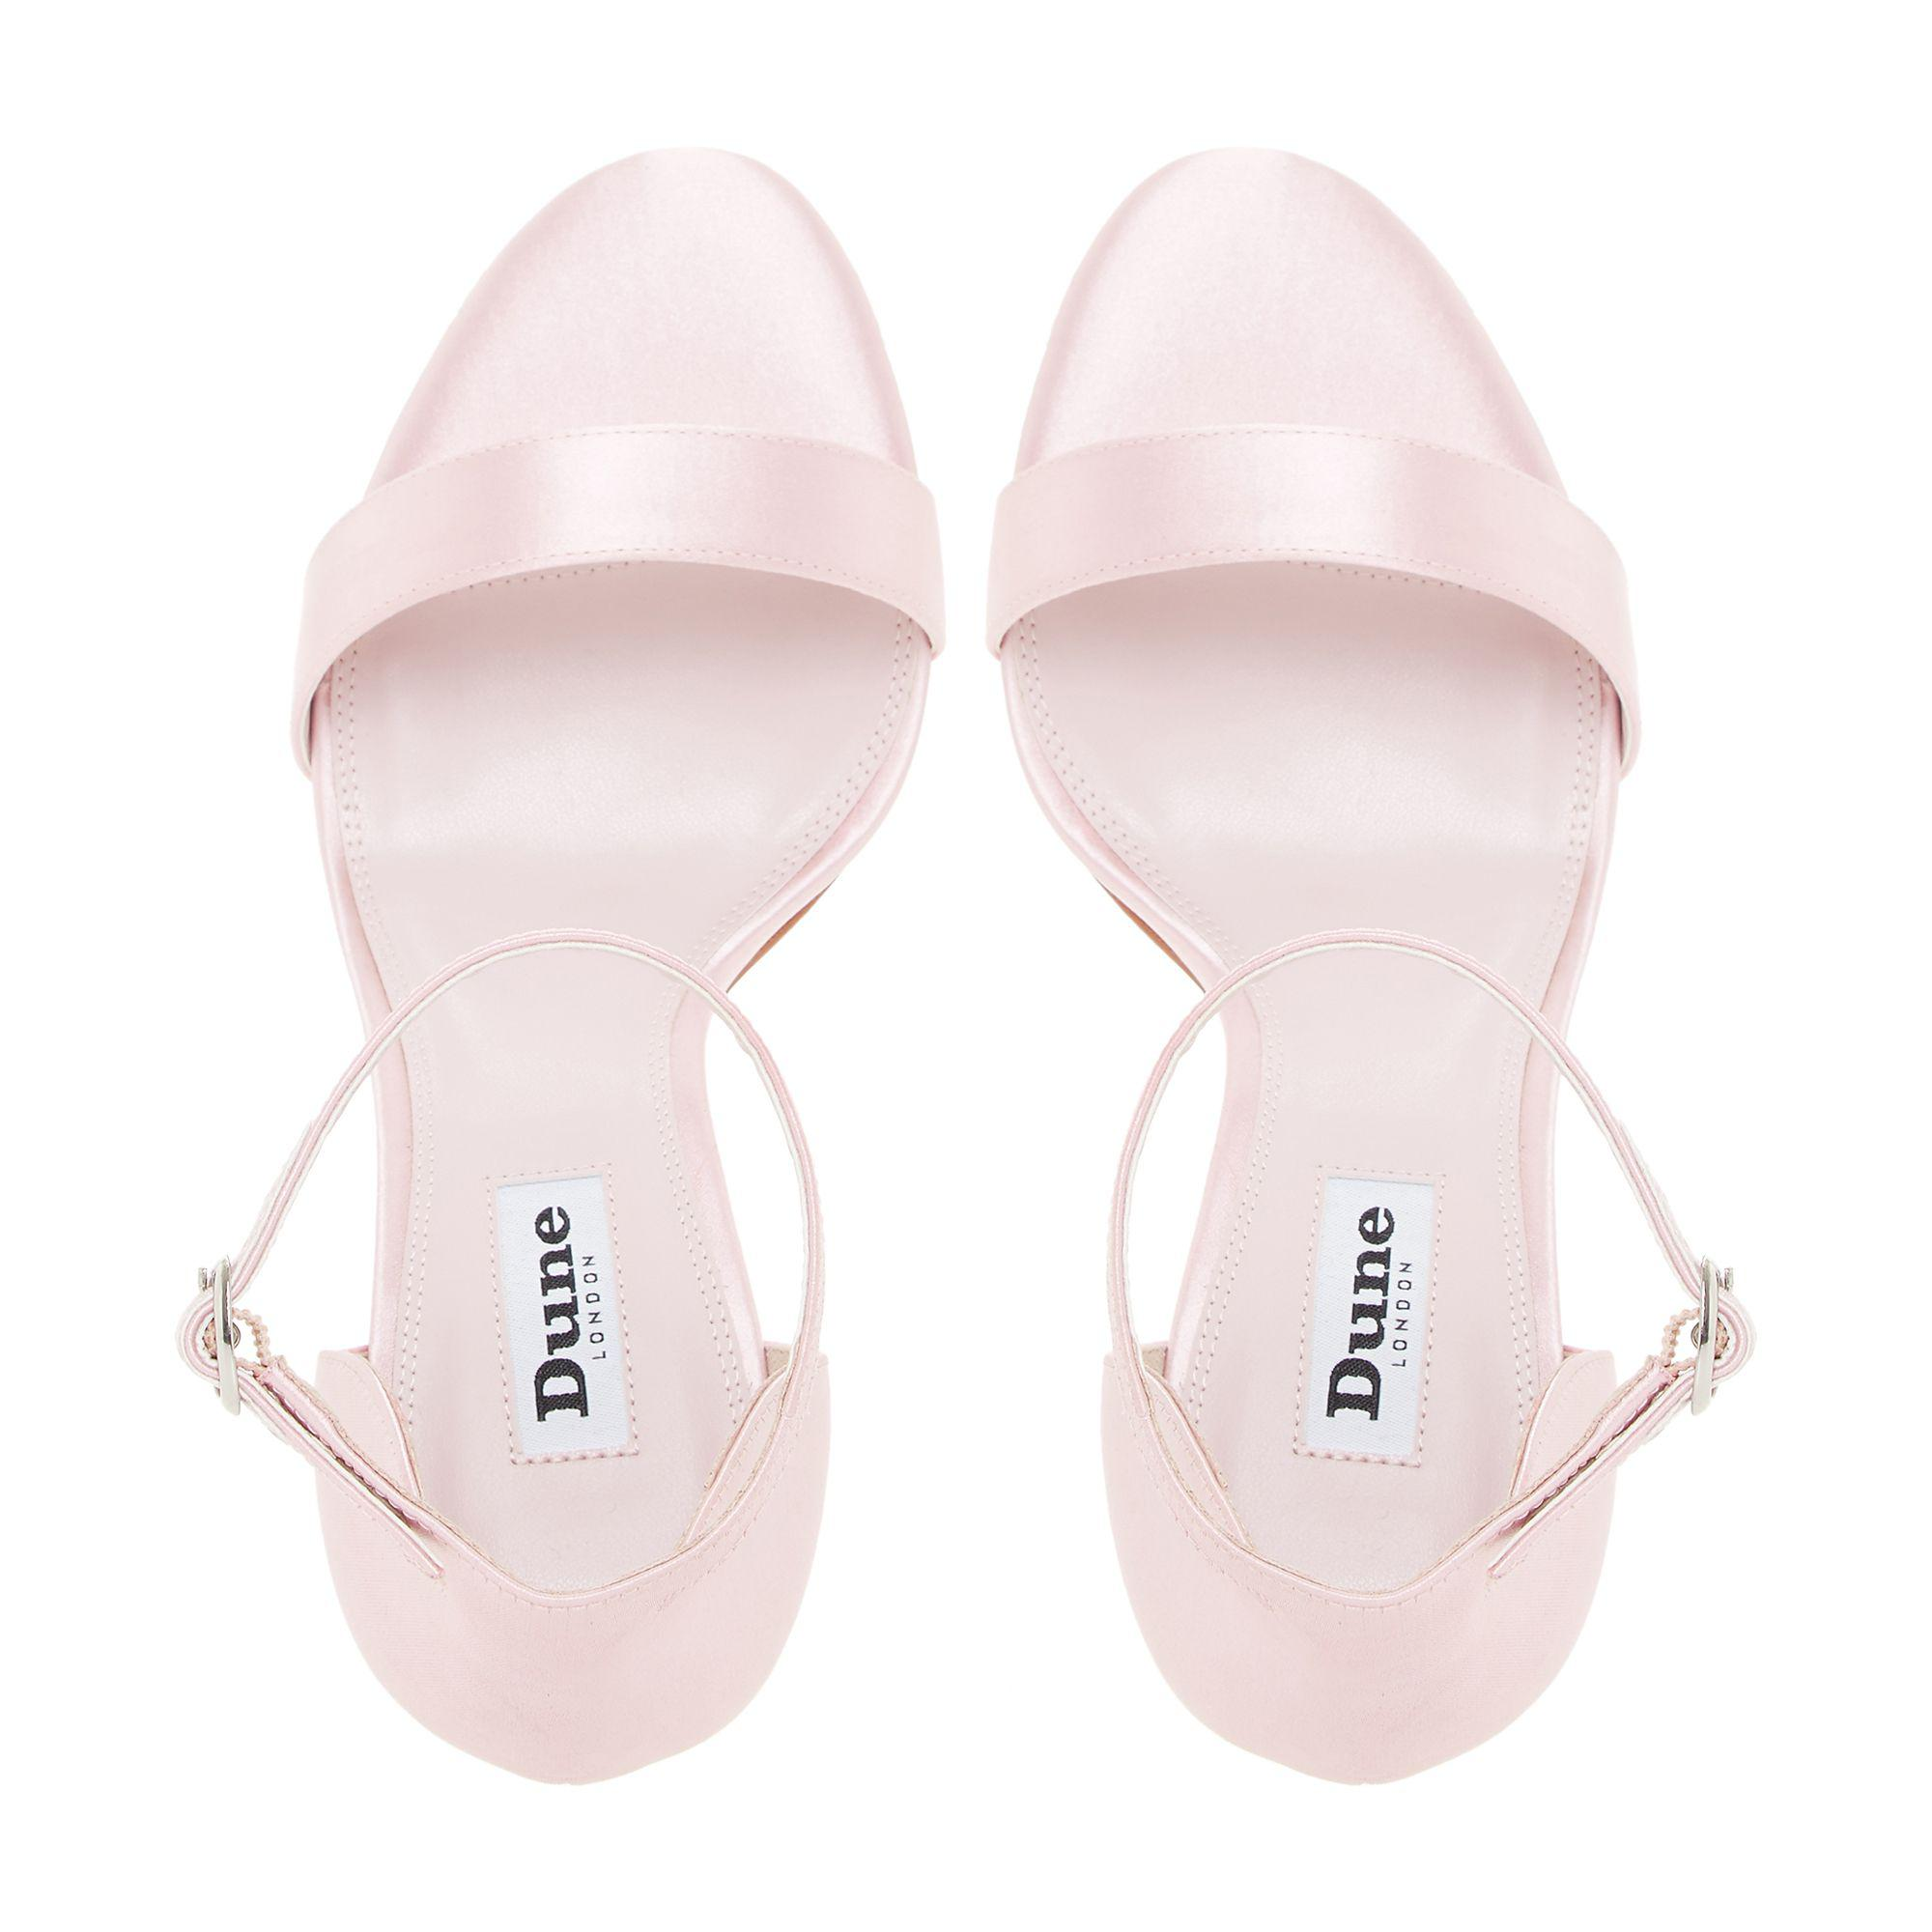 37e51af5f39 Dune Pale Pink  maides  High Stiletto Heel Ankle Strap Sandals in ...